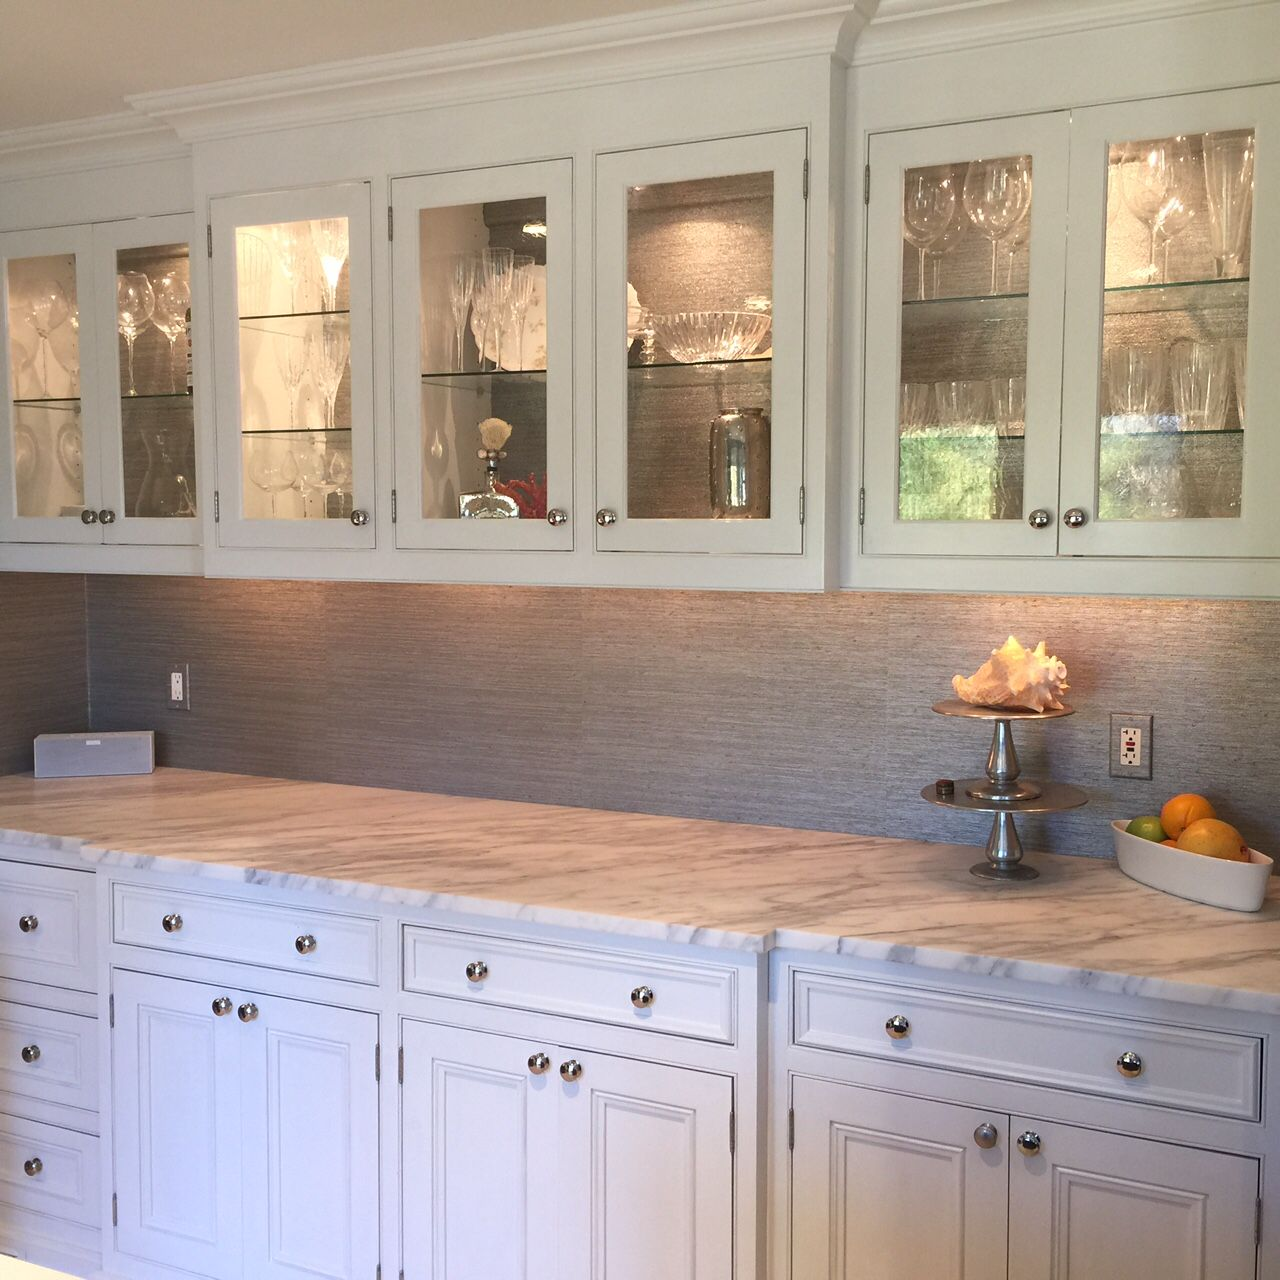 Easy and affordable kitchen cabinet refacing ideas glass front